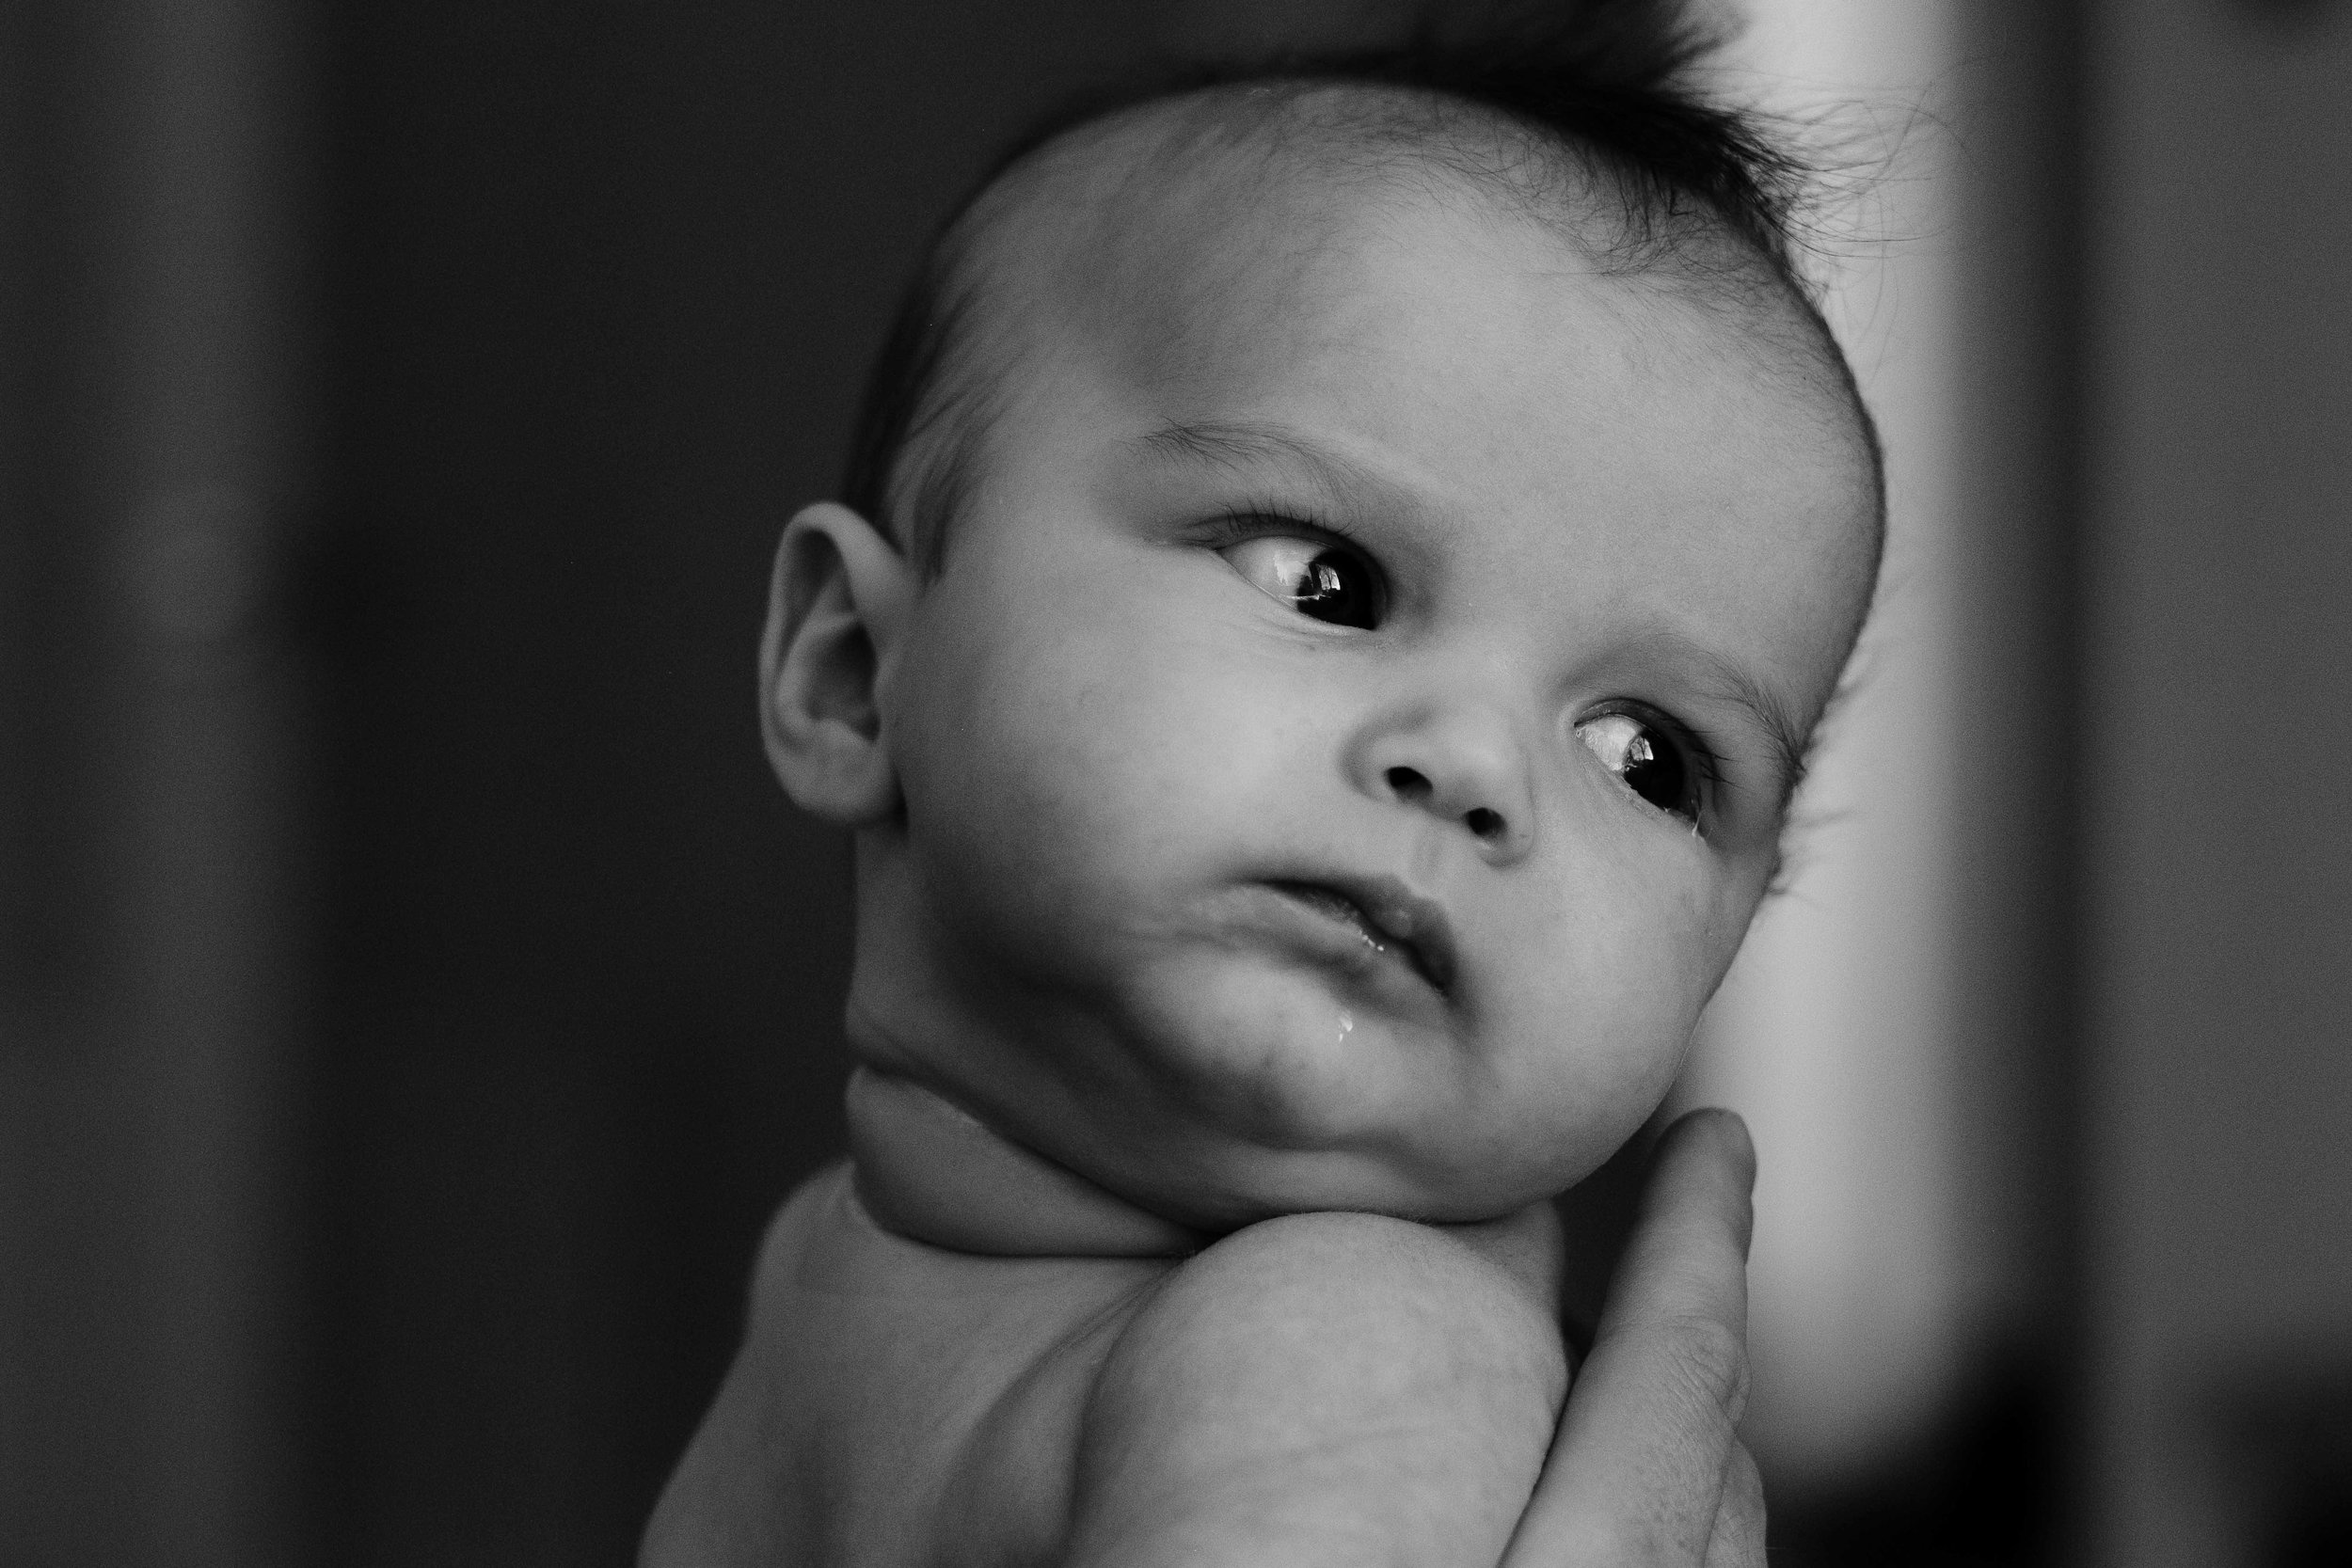 A baby is looking away from the camera